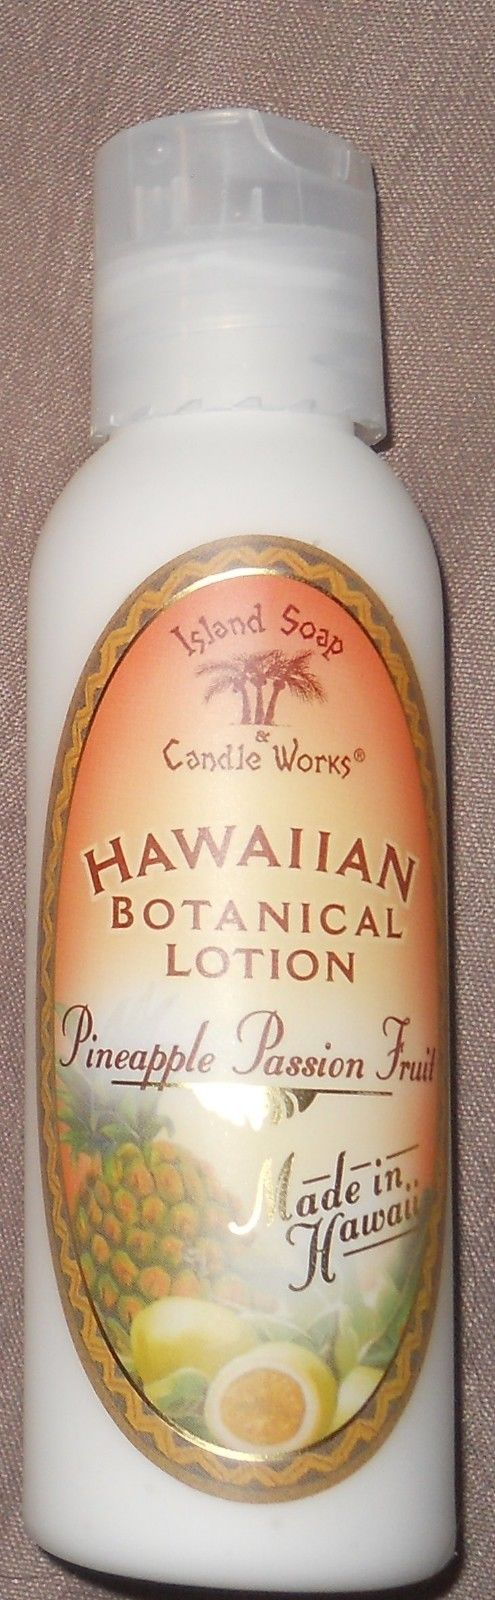 Hawaiian Botanical Lotion PINEAPPLE PASSION FRUIT 2 Oz  by Island Soap & Candle